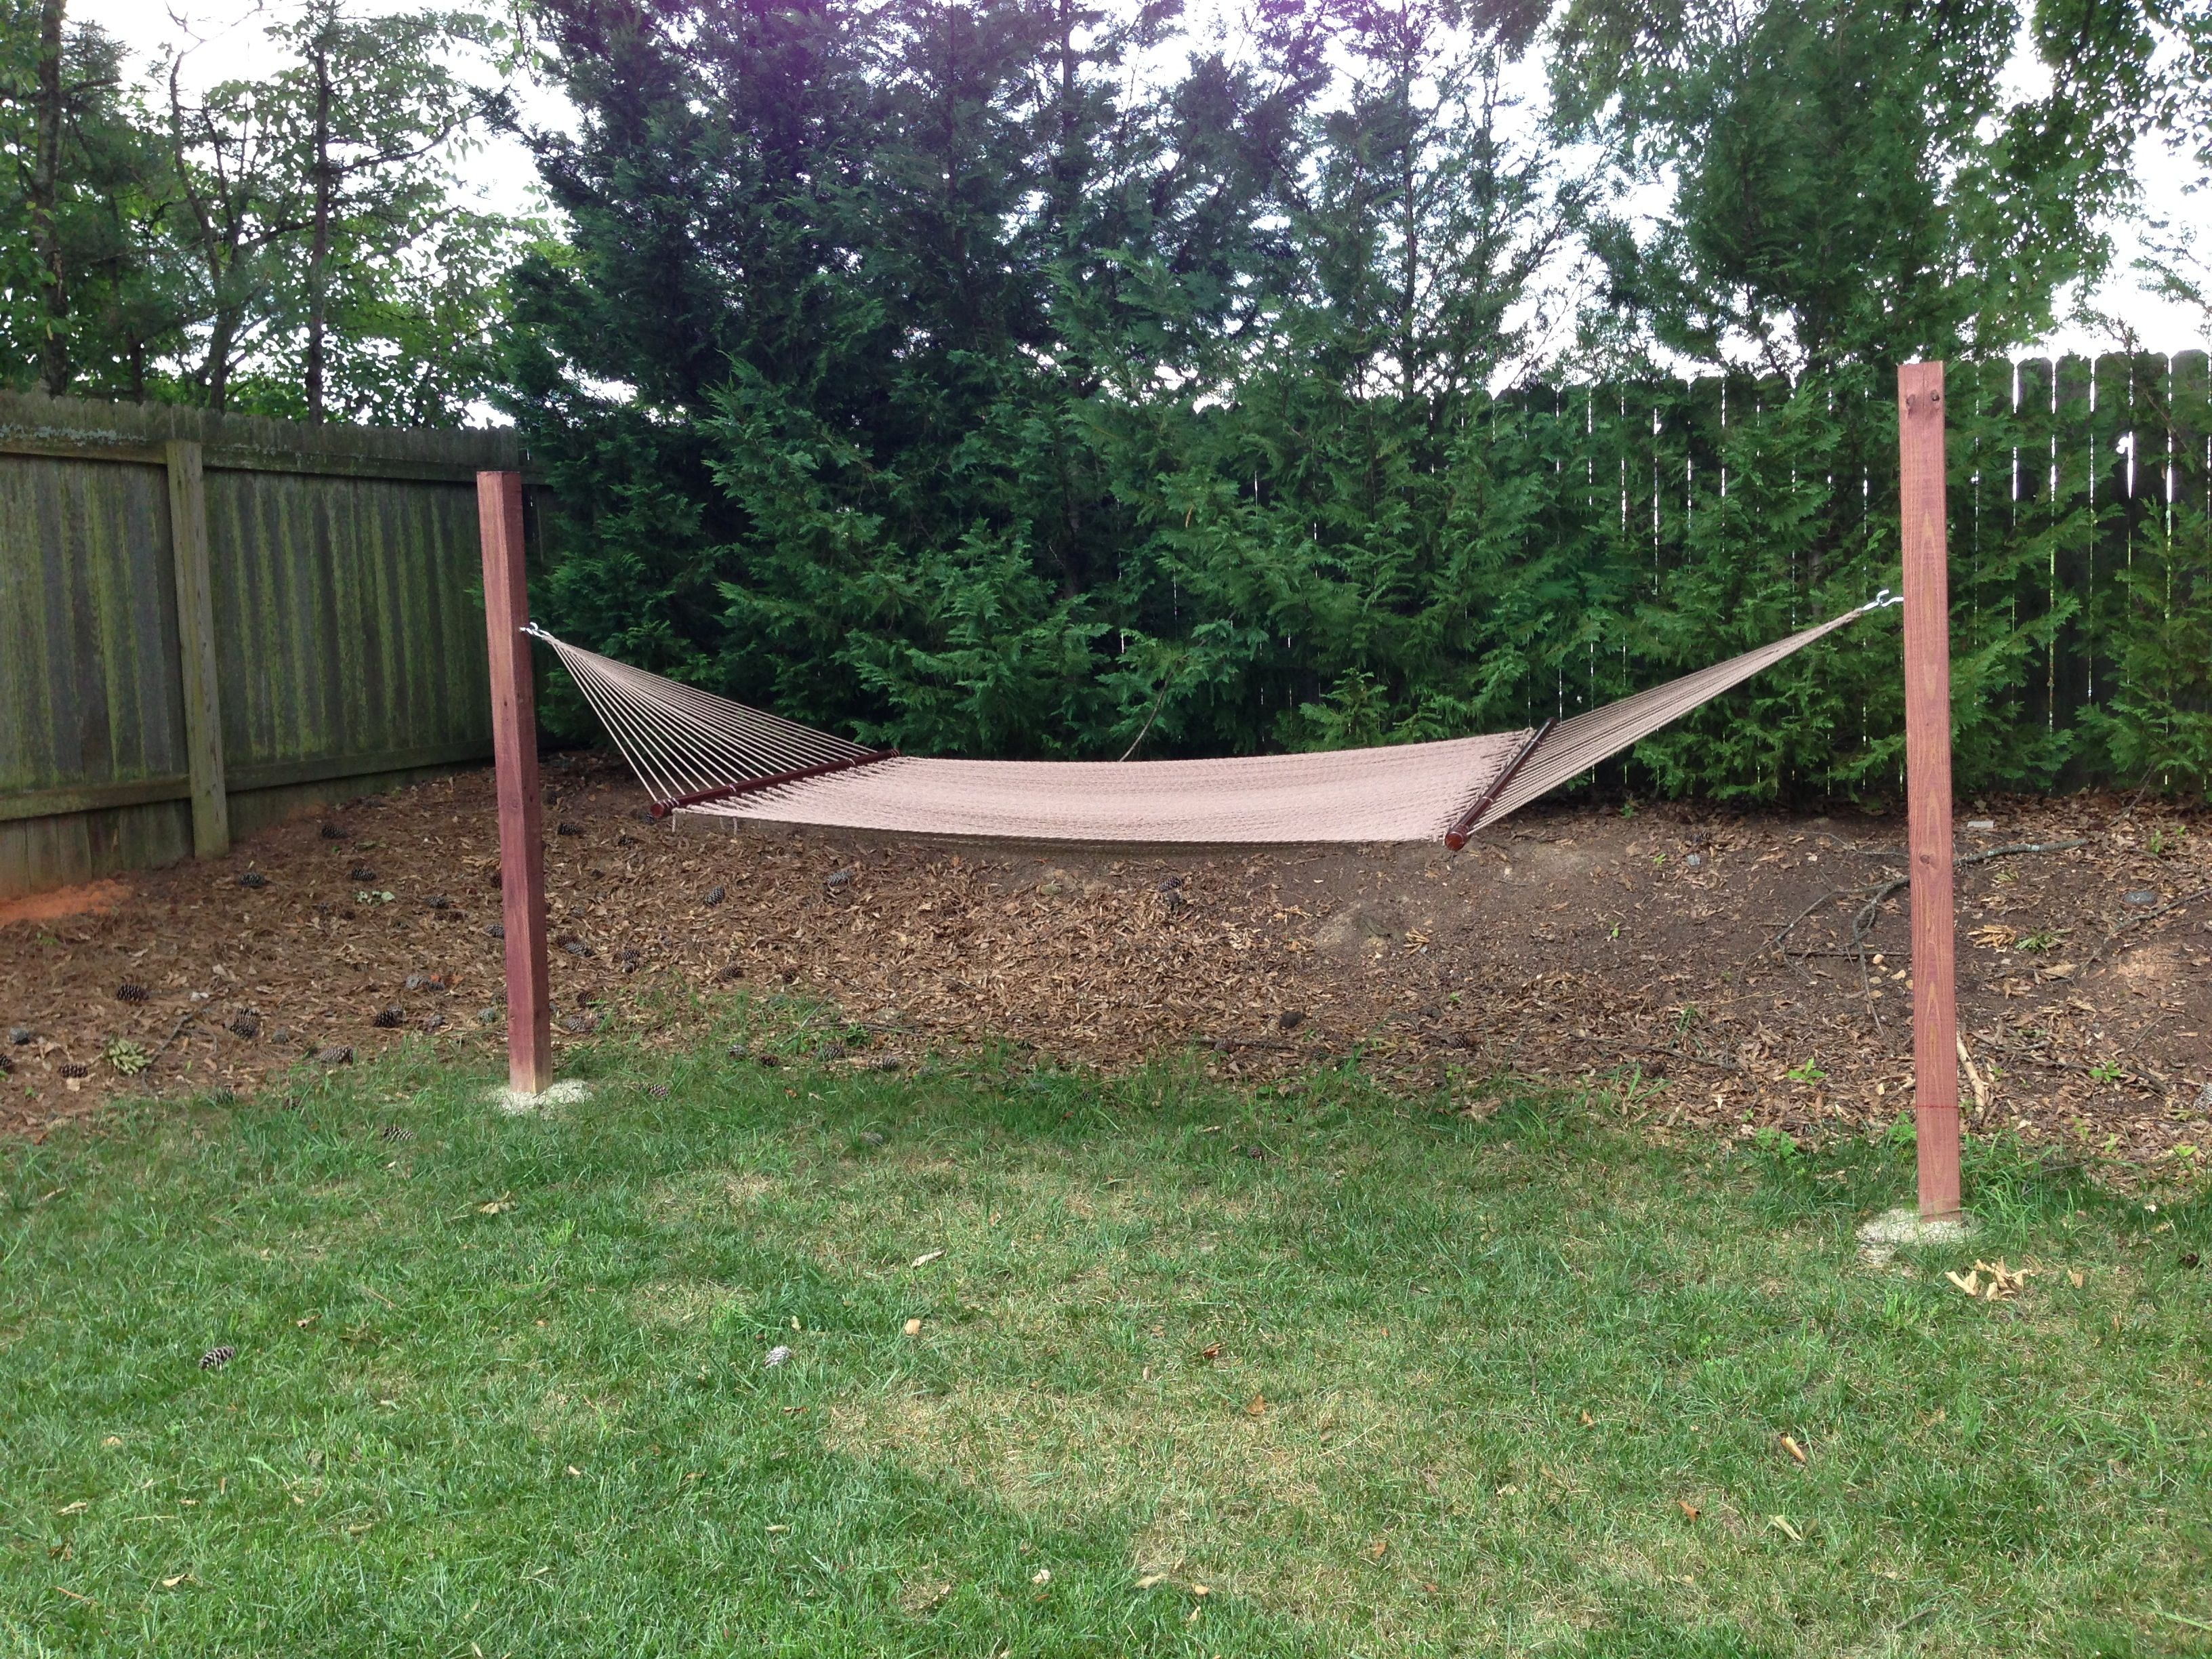 15 Inexpensive Diy Hammock Stand Tutorial Guide Exteriors And intended for 11 Smart Ways How to Makeover Backyard Hammock Ideas